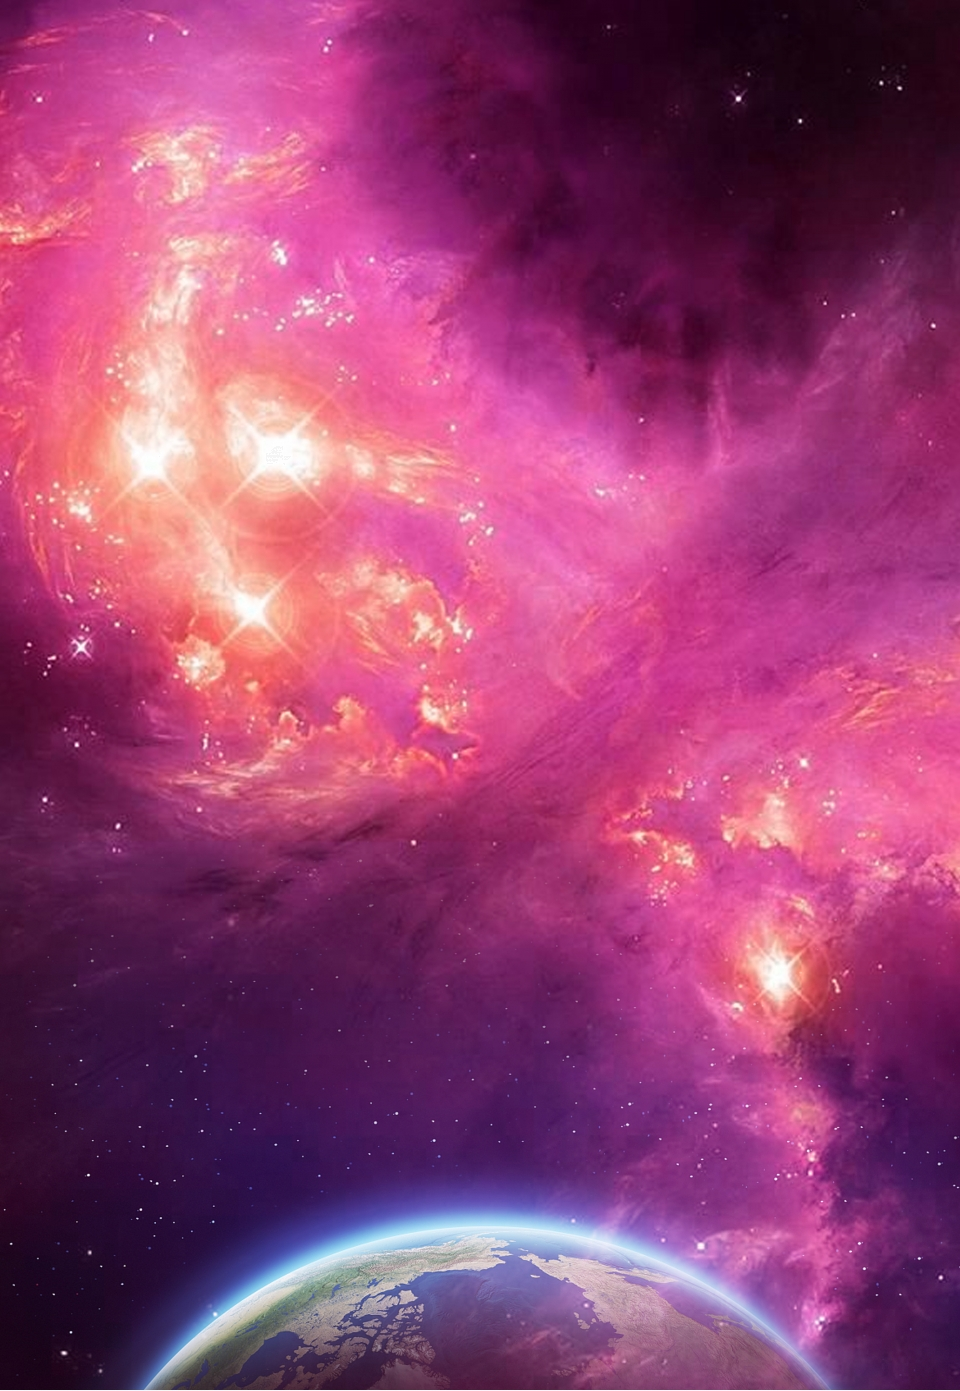 Cosmic Space Starry Sky Poster Background Universe Space Moon Background Image For Free Download